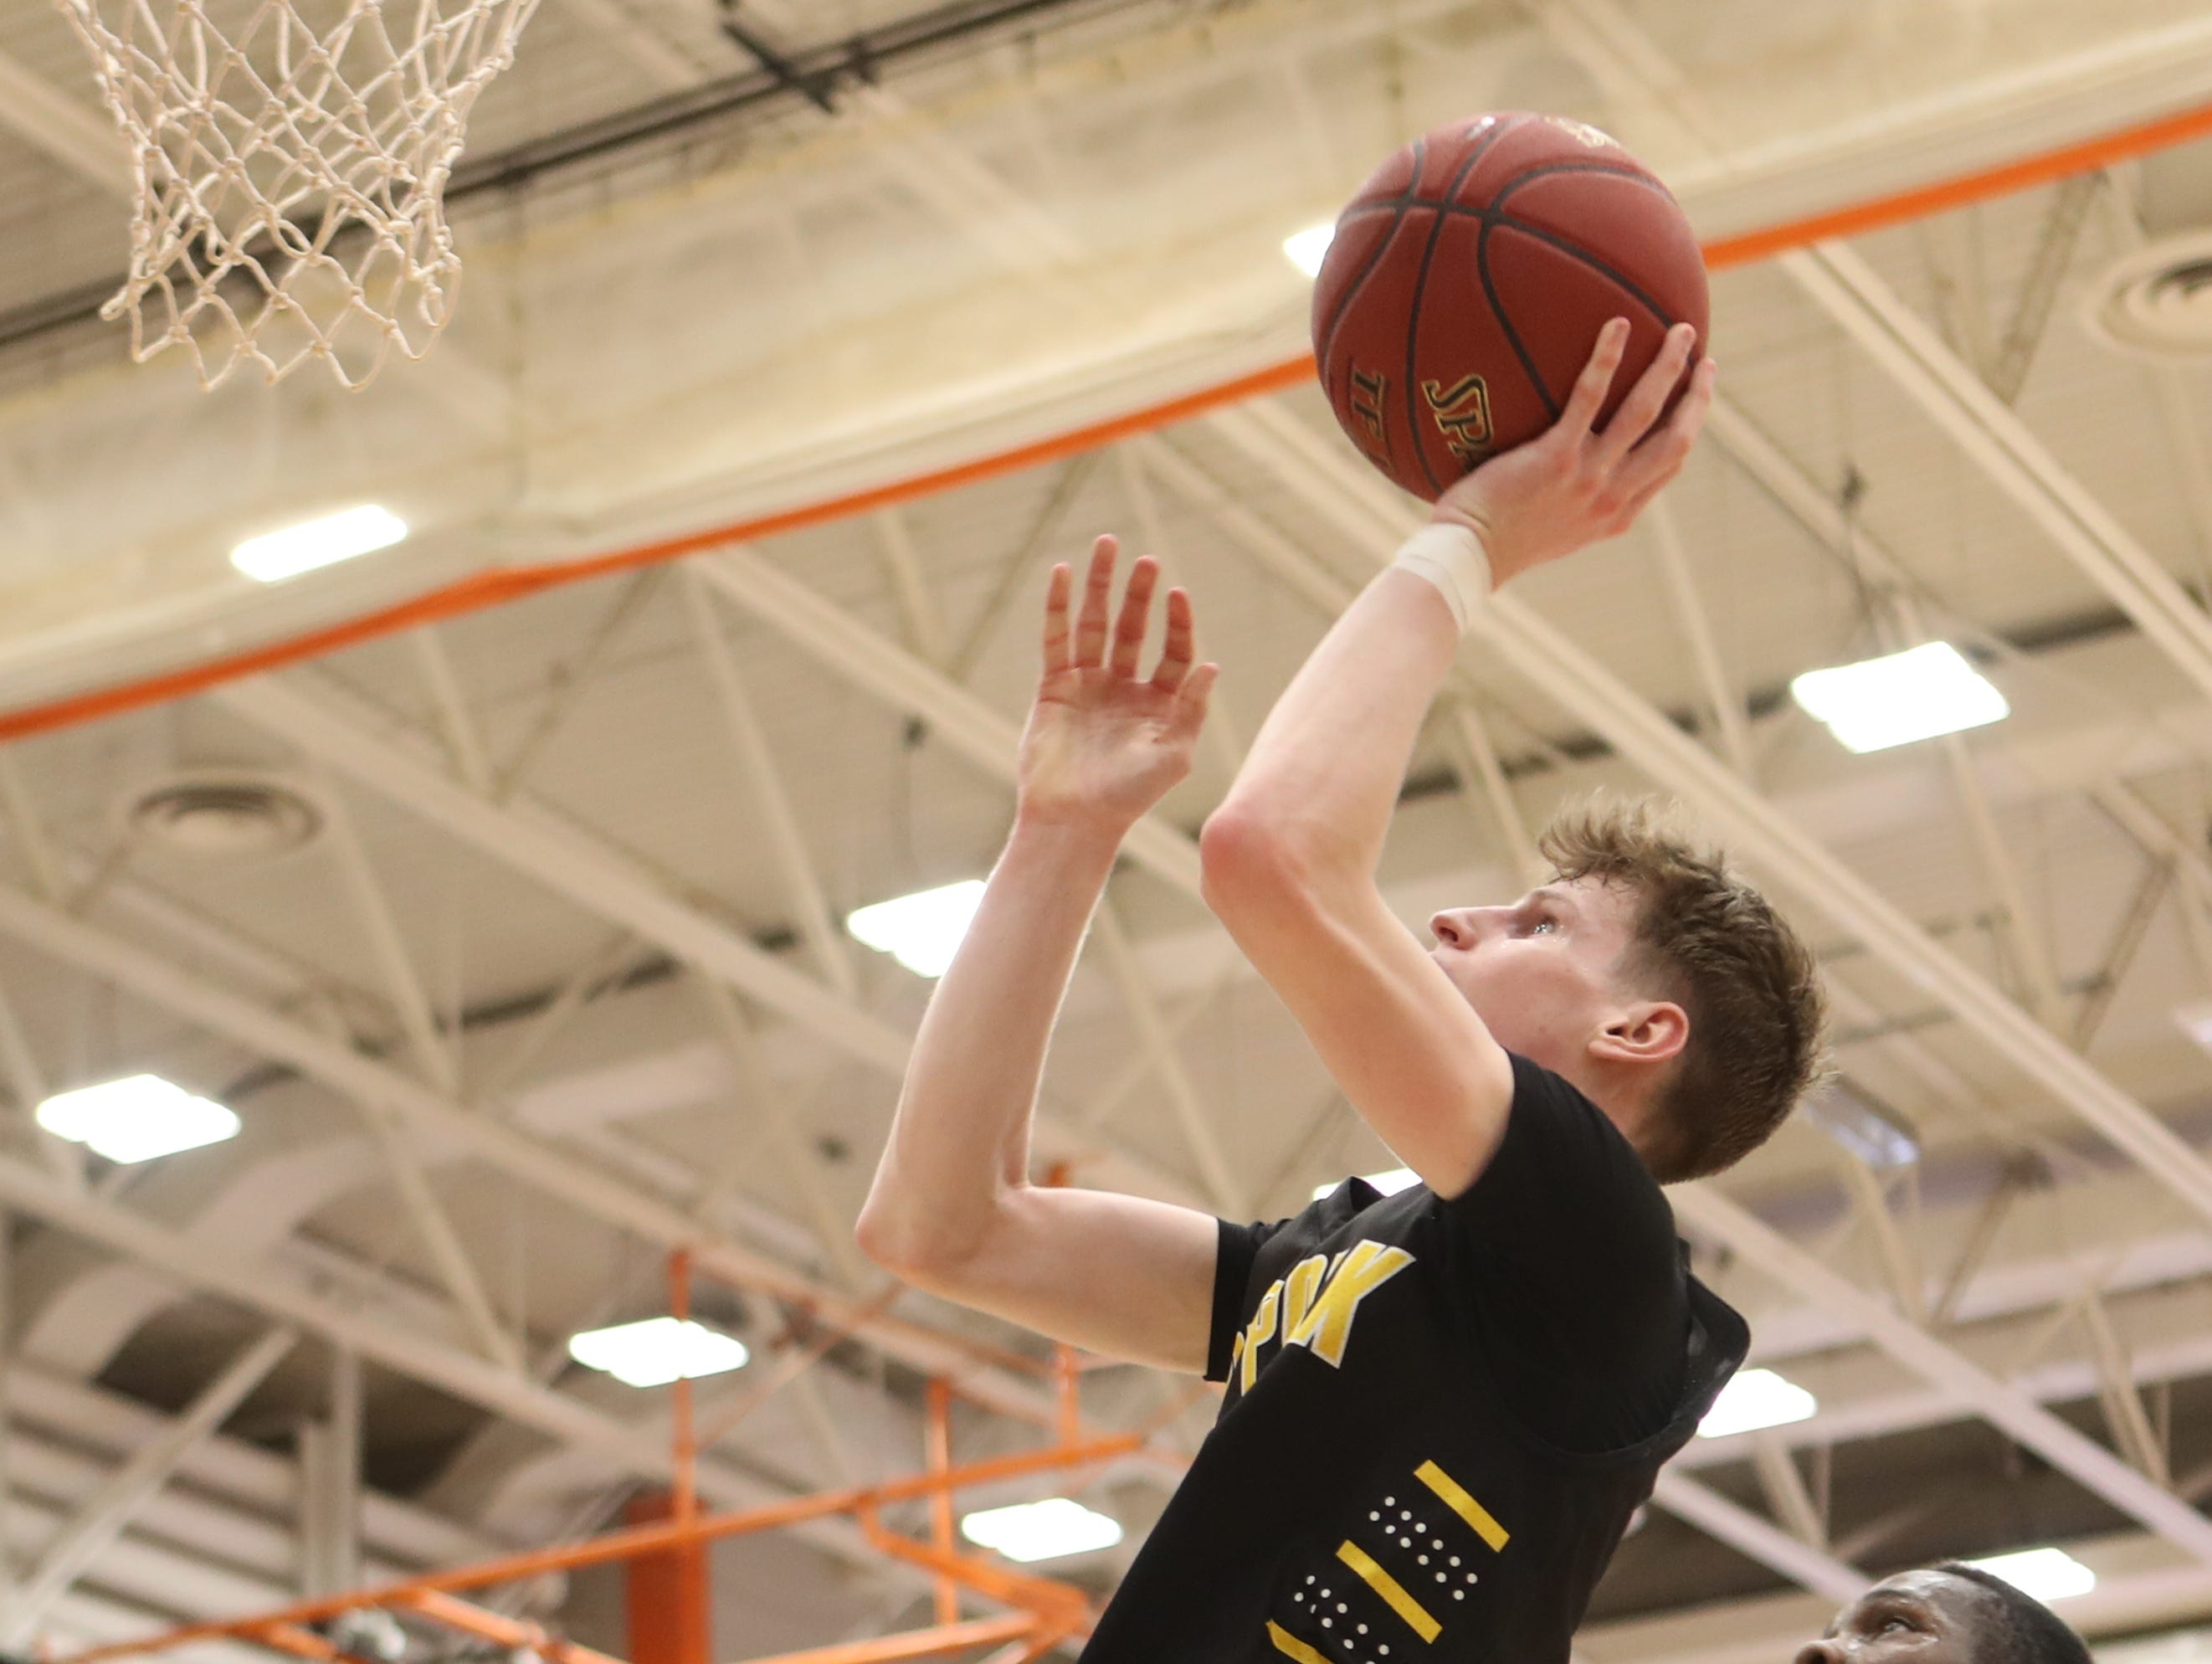 Southeast Polk Rams' Sam Glenn (11) shoots and scores against the Valley Tigers during a boys basketball game at Valley High School on Jan. 11, 2019. Valley won, 61-54.